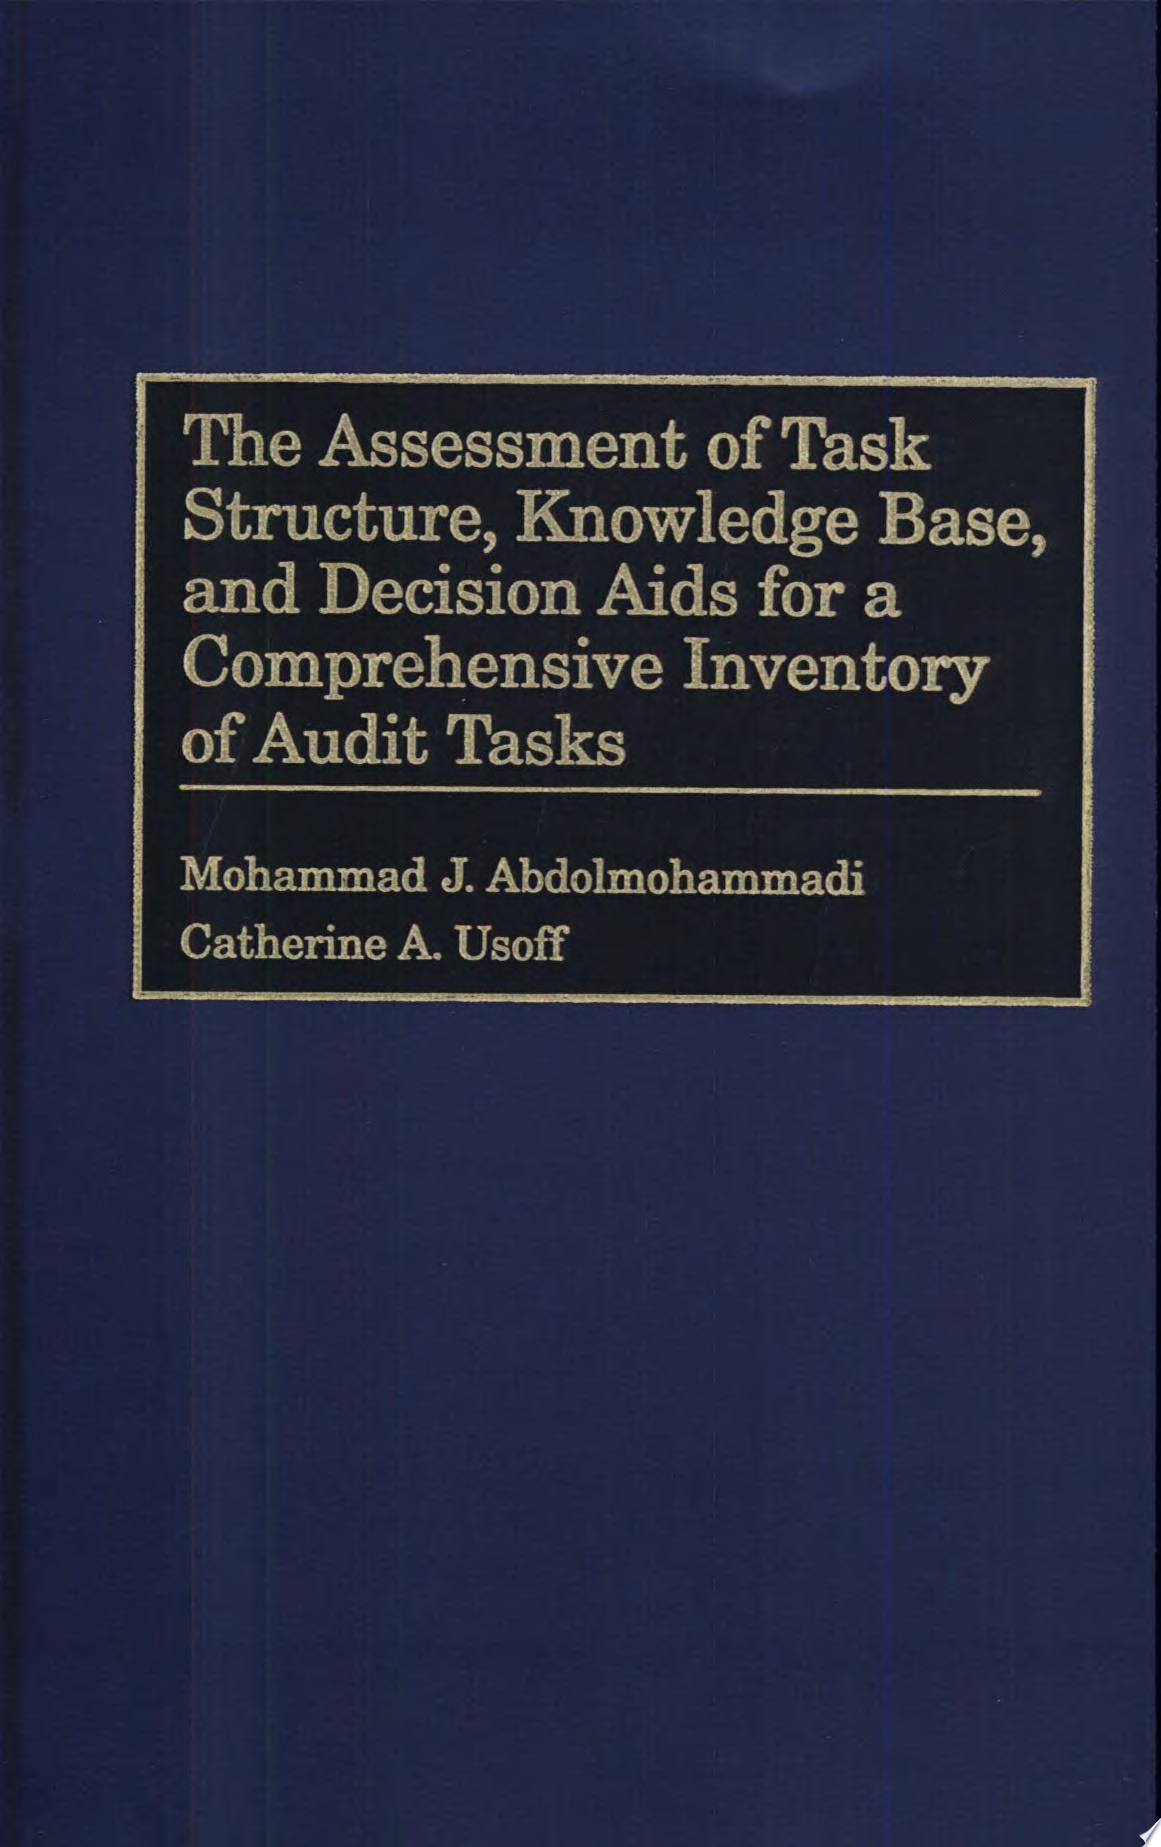 The Assessment of Task Structure  Knowledge Base  and Decision Aids for a Comprehensive Inventory of Audit Tasks